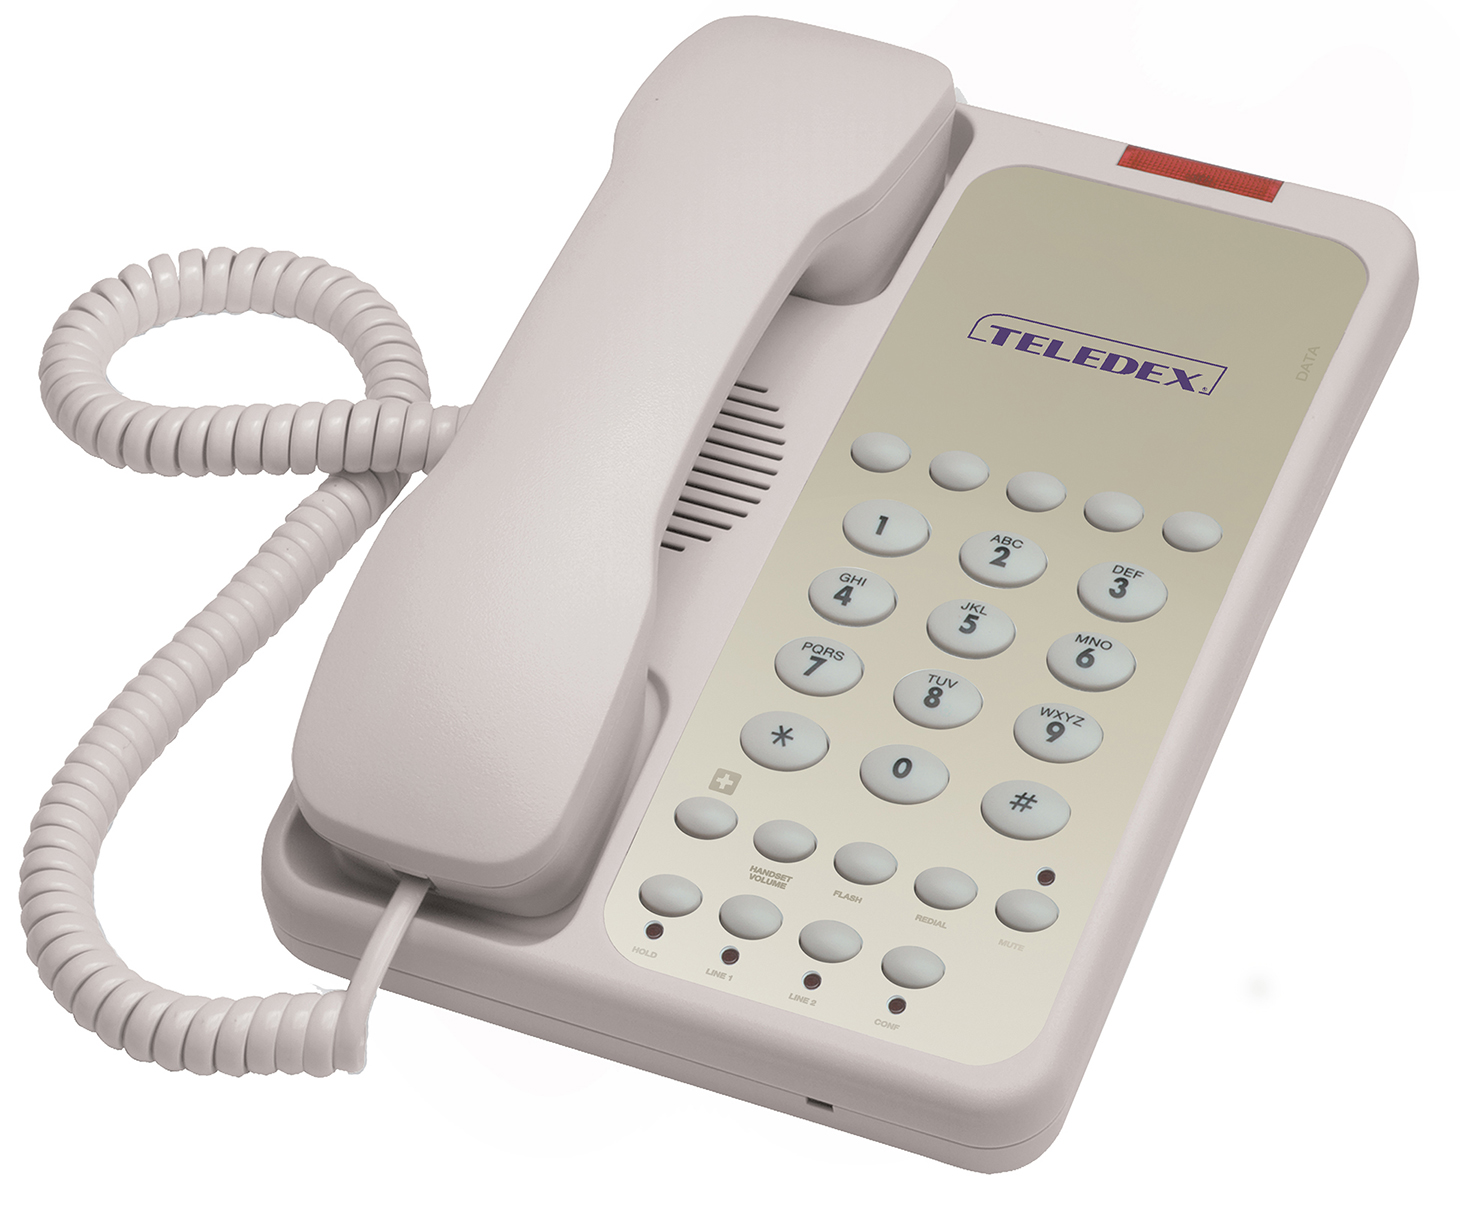 clarity lified cordless phone with answering machine